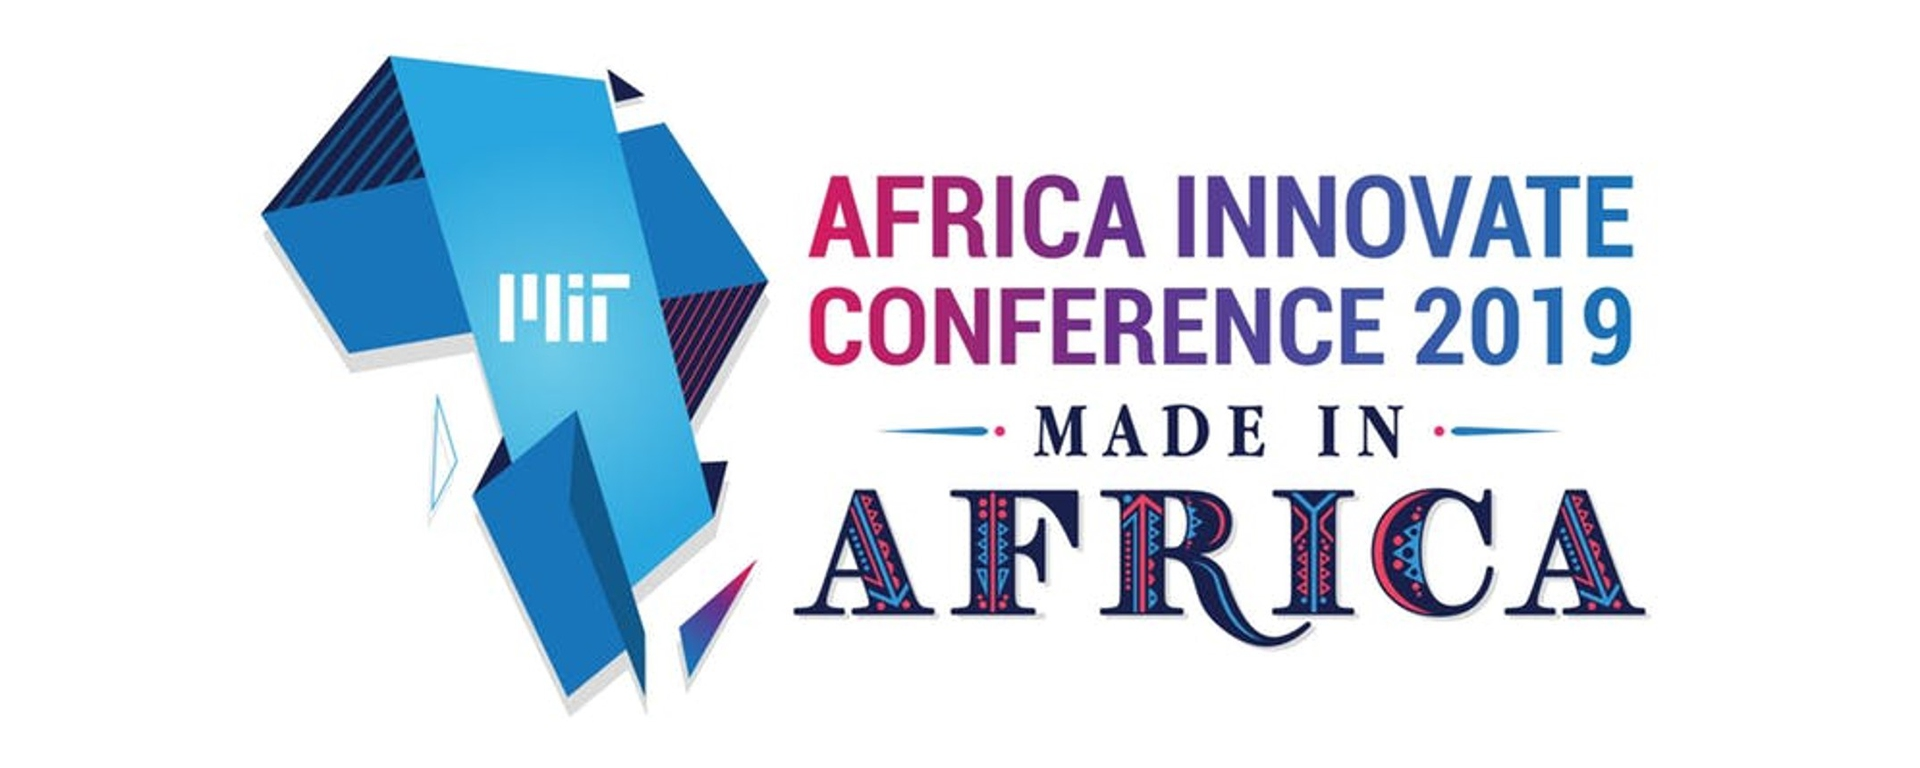 MIT Sloan Africa Business Club - MIT Africa Innovate Conference | Made in Africa Movemeback African event cover image